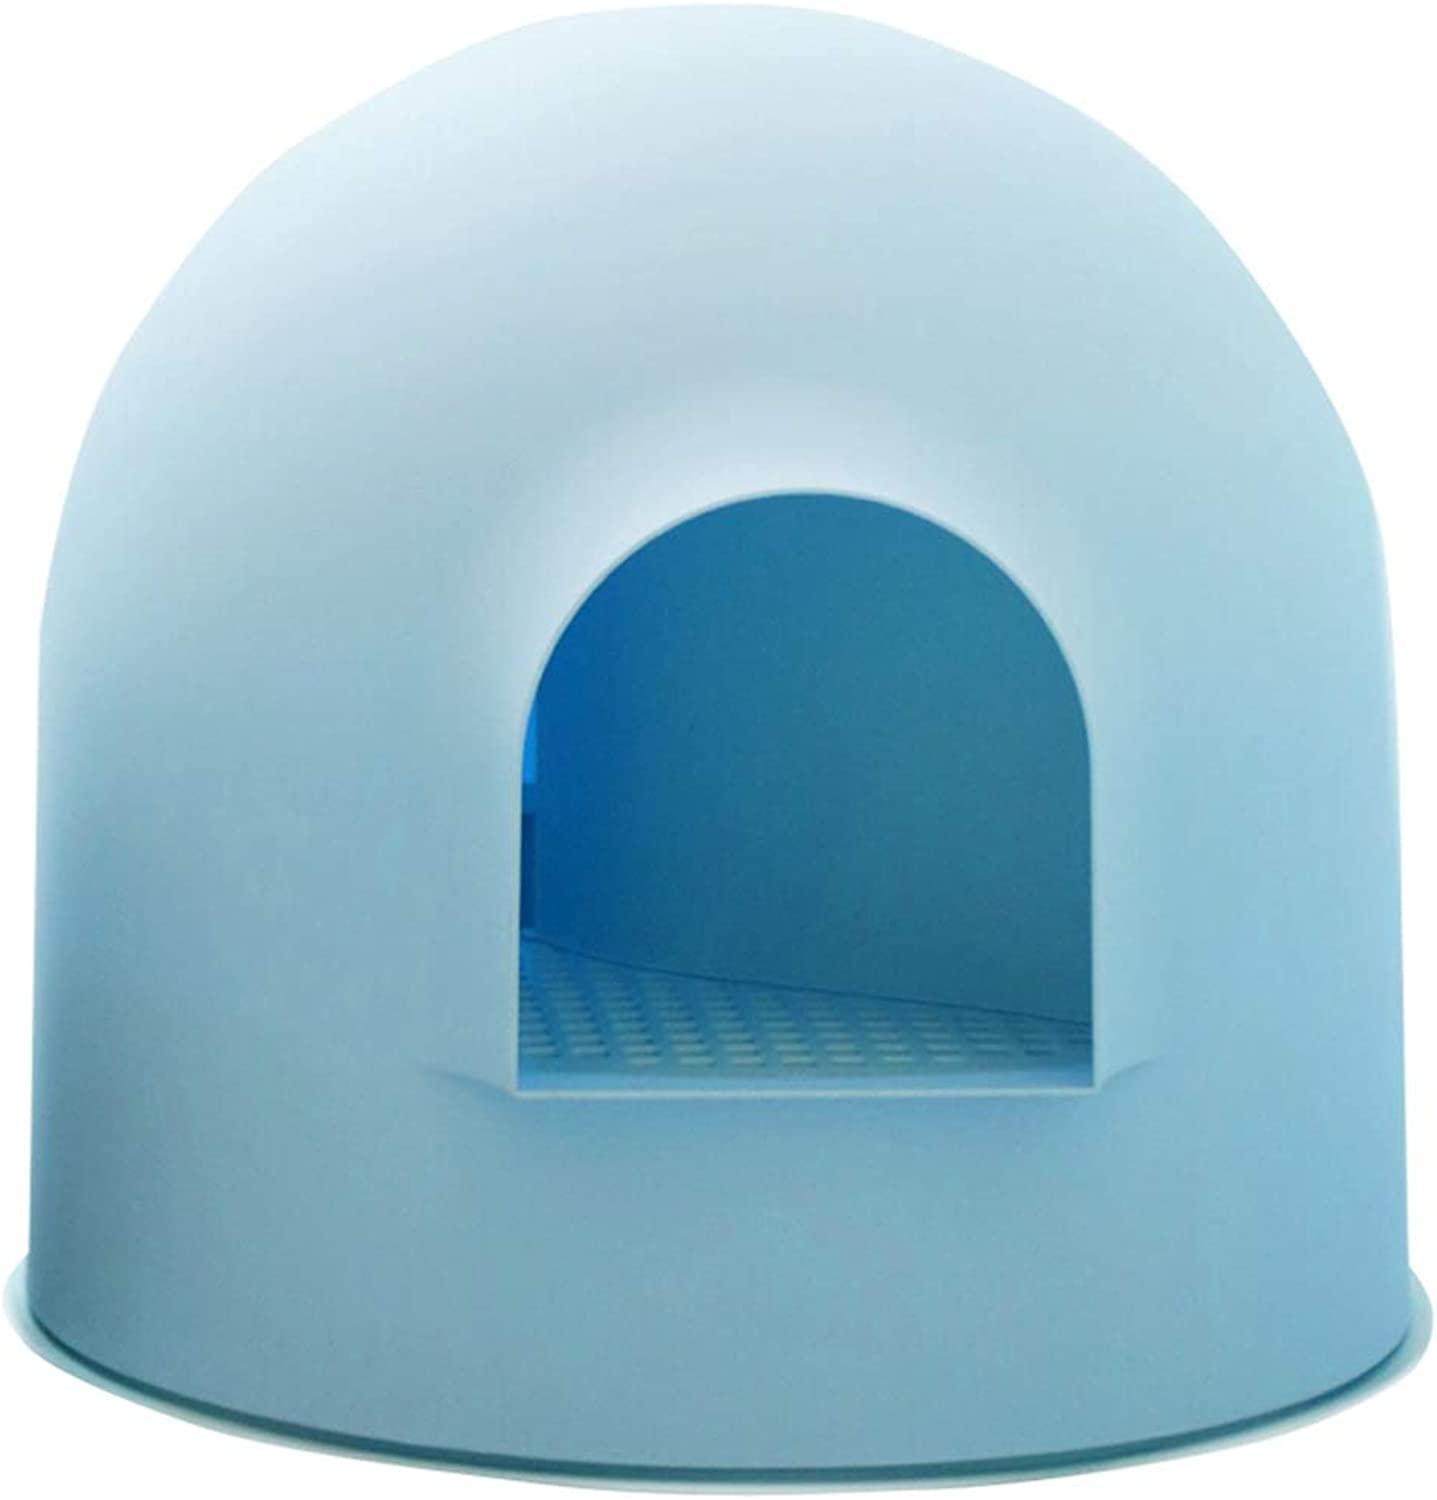 Mei Xu Cat Dog Litter- Pet Toilet Safe odorless Material Fully Enclosed Ball Large Space Big Cats Small Cats Small Dogs Universal Easy to Clean 3 colors Pet Supplies (color   bluee)